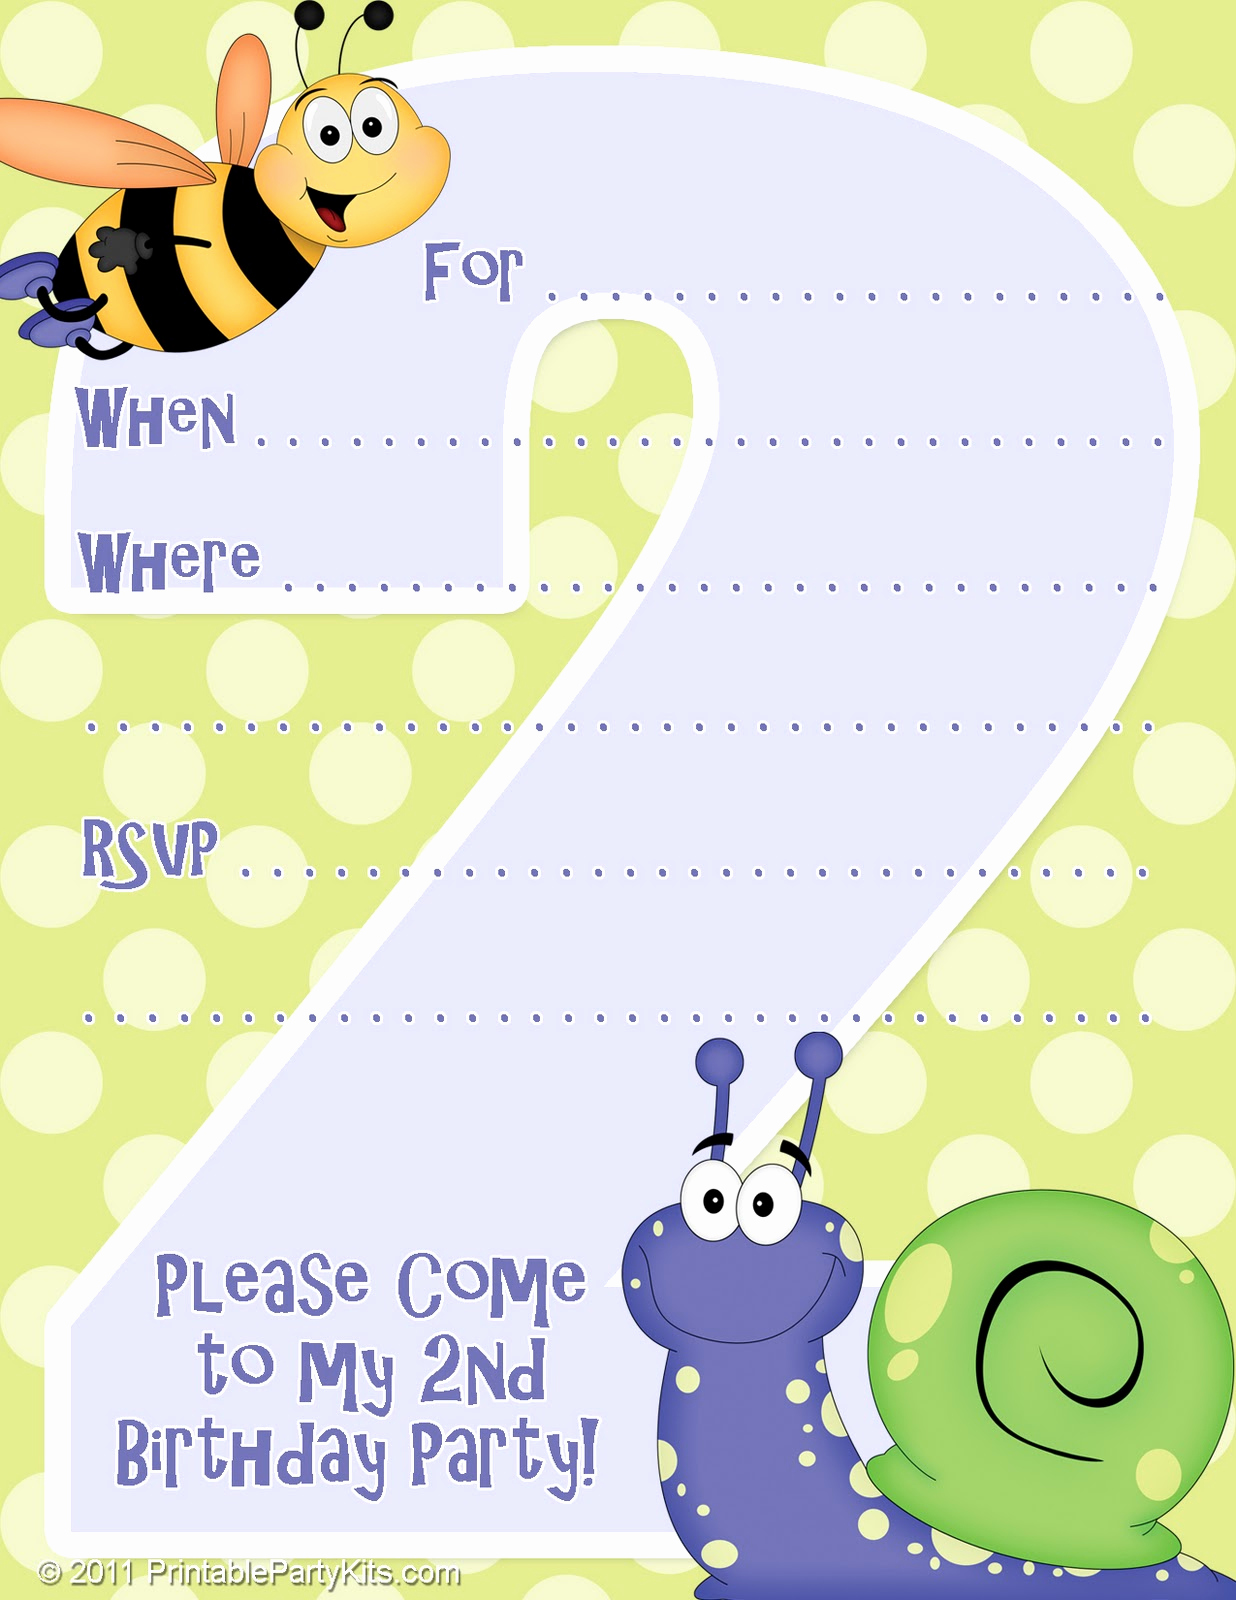 2nd Birthday Invitation Wording Fresh Free Printable Party Invitations Invitation Template for